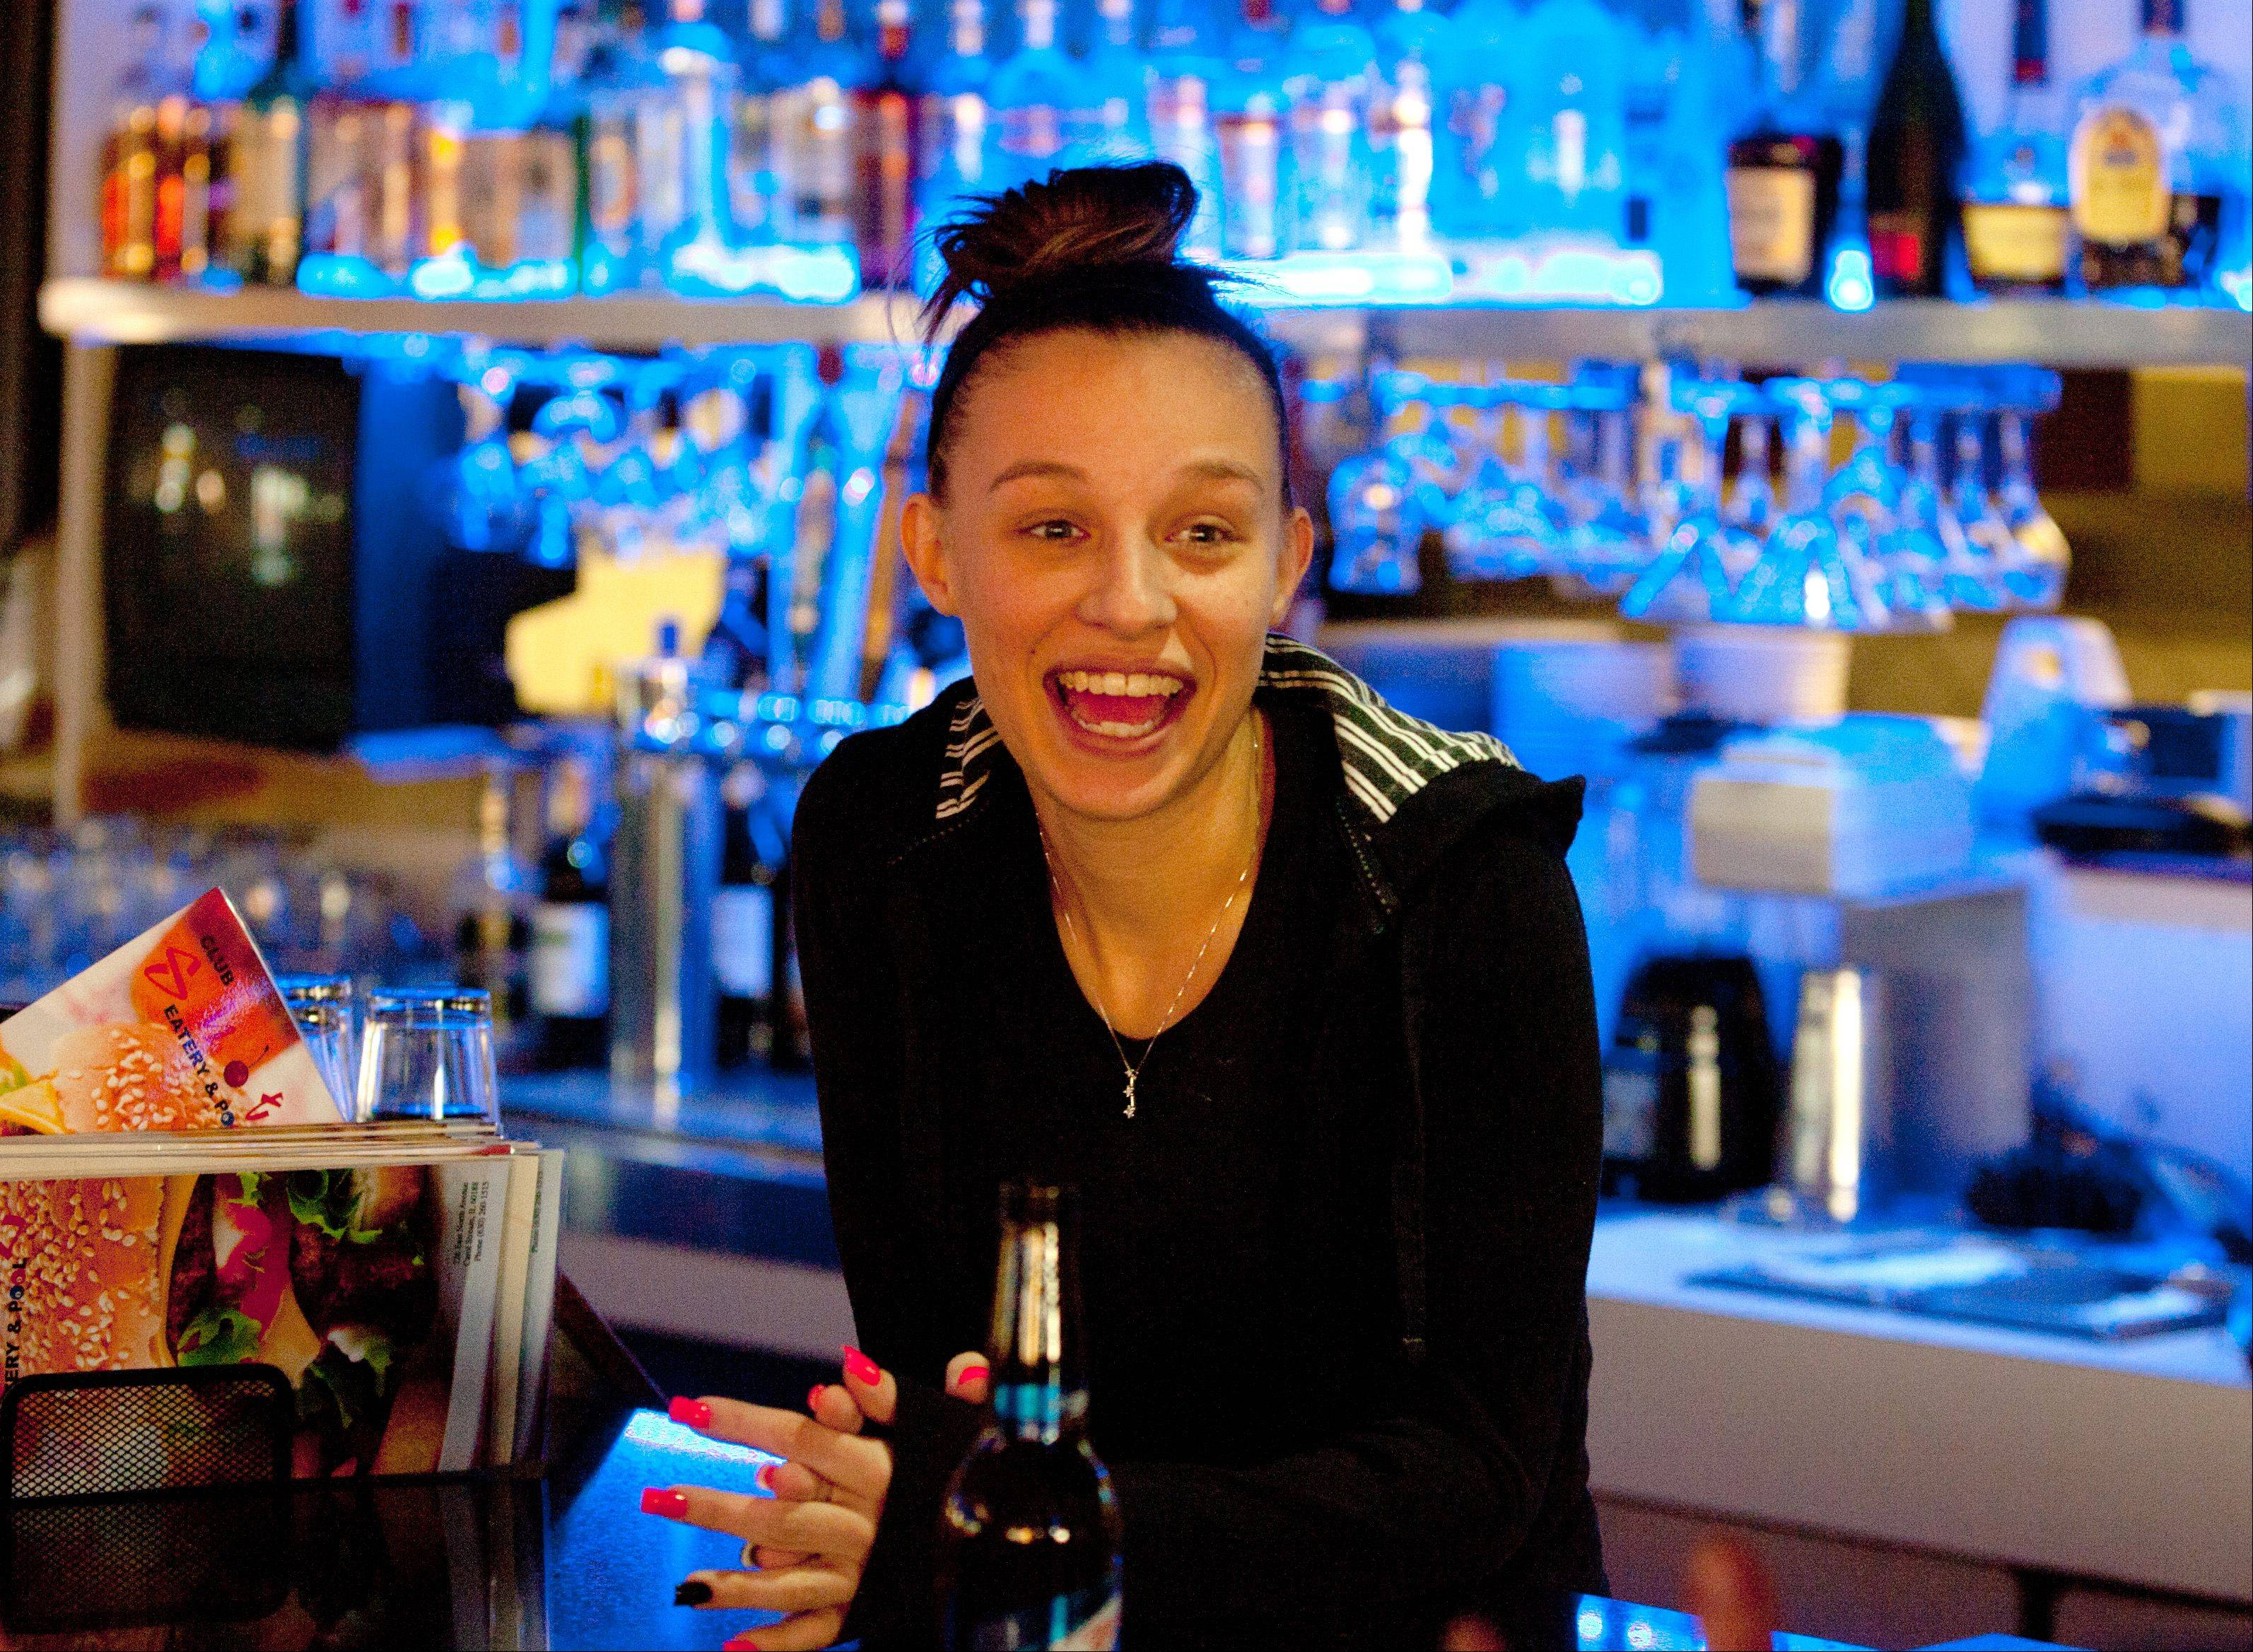 Ashley Edminson tends bar at Club Shotz in Carol Stream.